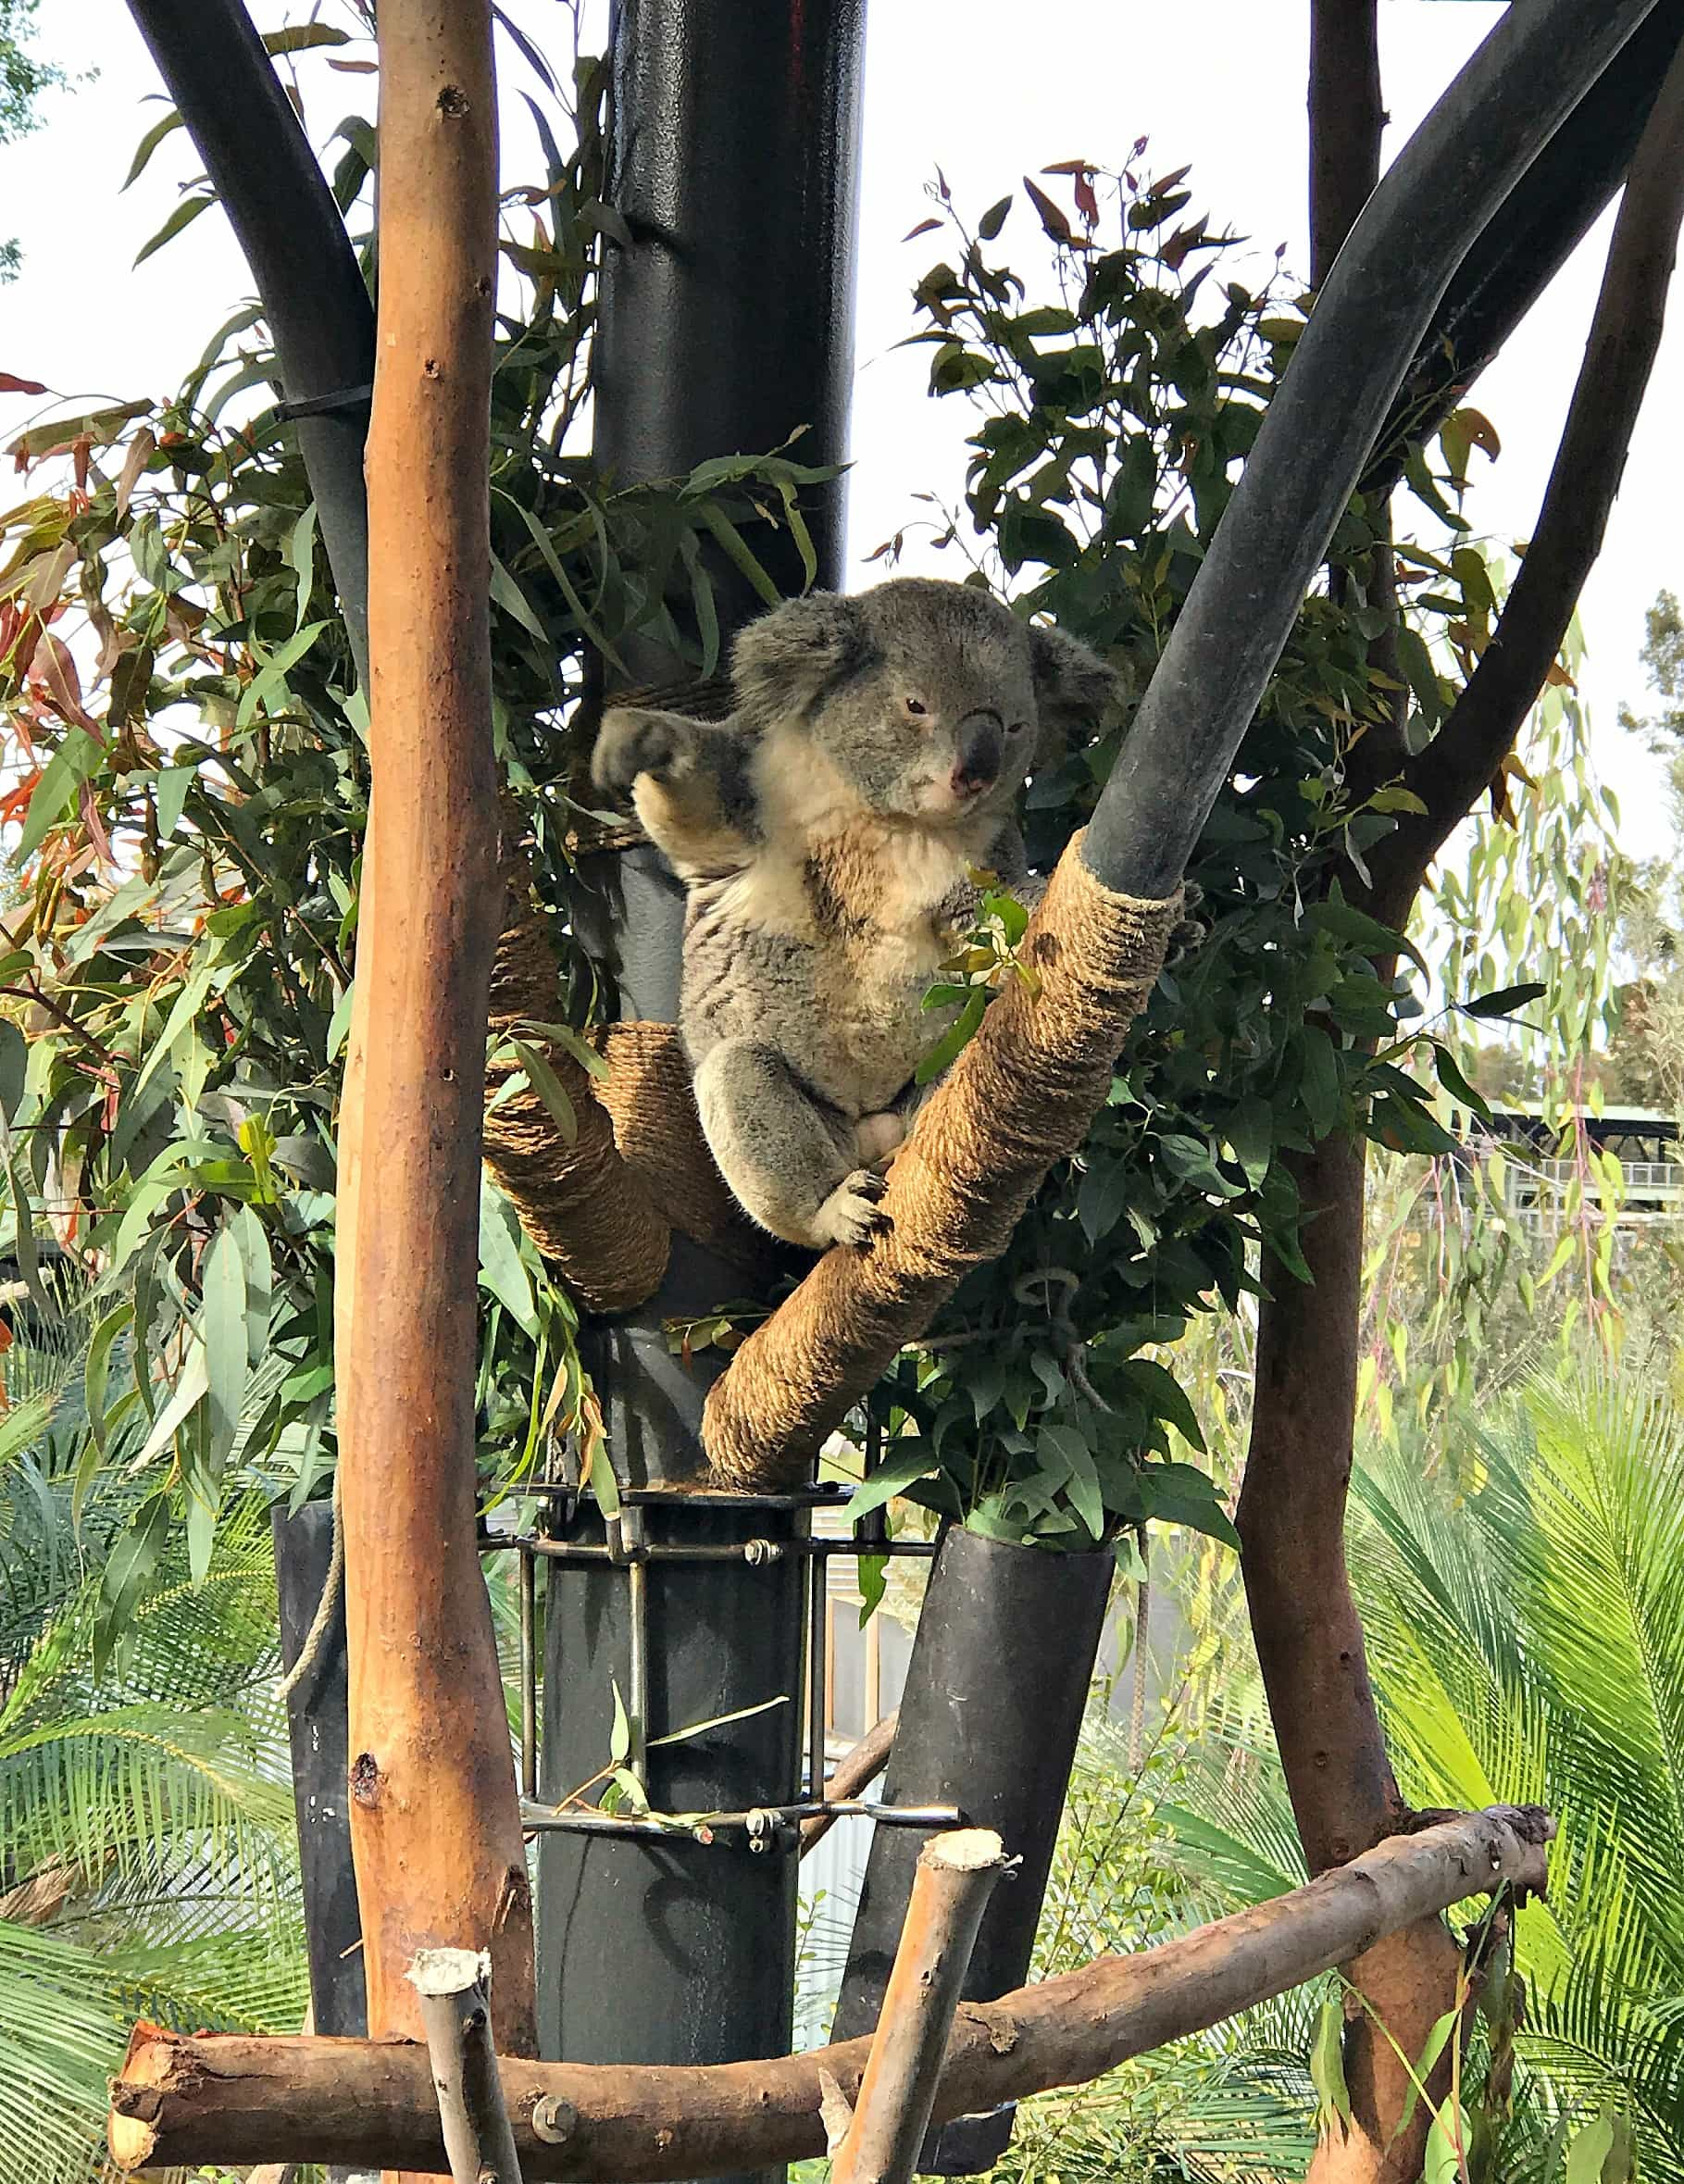 This koala at San Diego Zoo looks like he's waving hello, doesn't he?